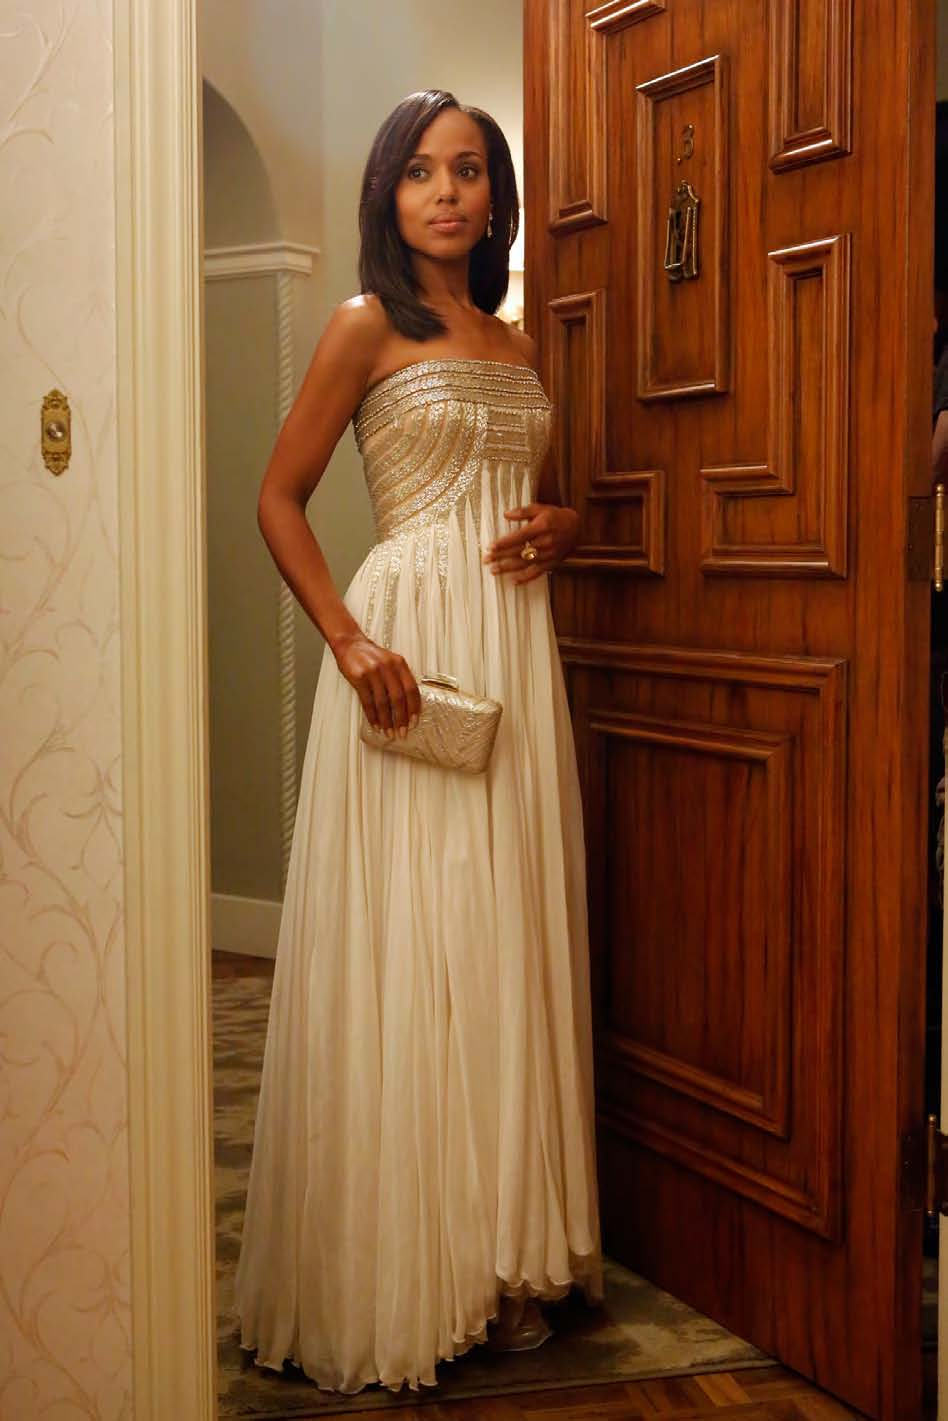 """abc.go.com    Episode : Season 2, Episode 8, """"Happy Birthday, Mr. President""""  Designer : Jean Fares Couture  Why it was chosen:  """"She was going with her boyfriend to this event,"""" said Paolo. """"She was not thinking about Fitz. She's actually considering being done with him. It's kind of a romantic moment, so we wanted the gown not to be just a straight up and down column, we wanted it to be romantic.""""  Fun Fact : The dress was vintage, and completely falling apart. """"The chiffon on the bottom was completely rotted,"""" Paolo said. """"I spent the whole weekend working on this gown."""" They also wanted the dress to float when Washington ran in it, so they rented a few wind machines, but didn't end up using them because it was a stormy night when they filmed."""